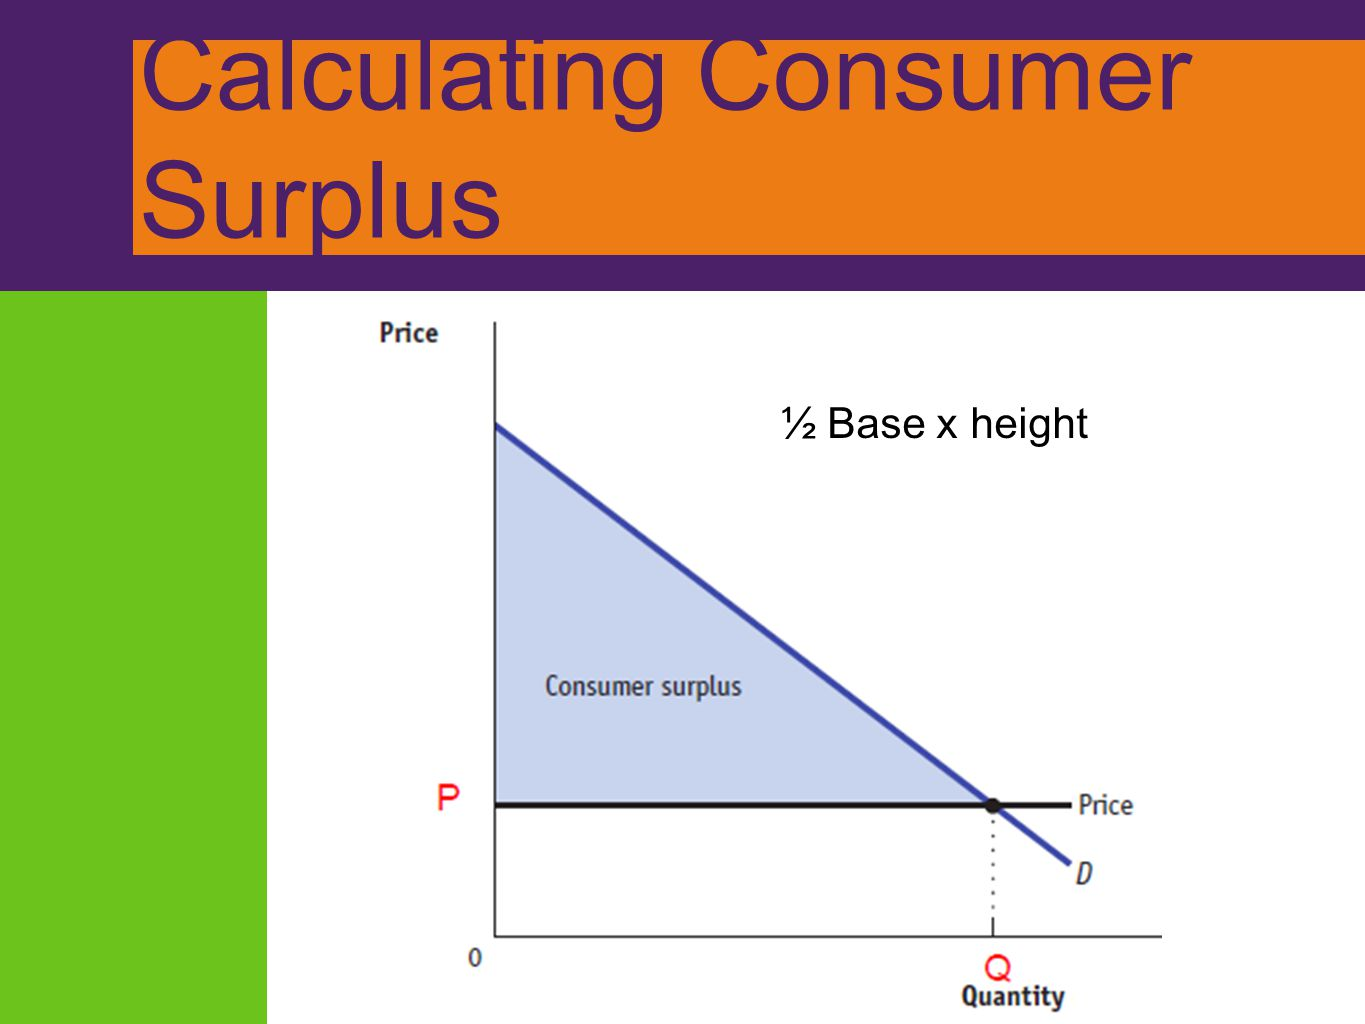 Calculating Consumer Surplus